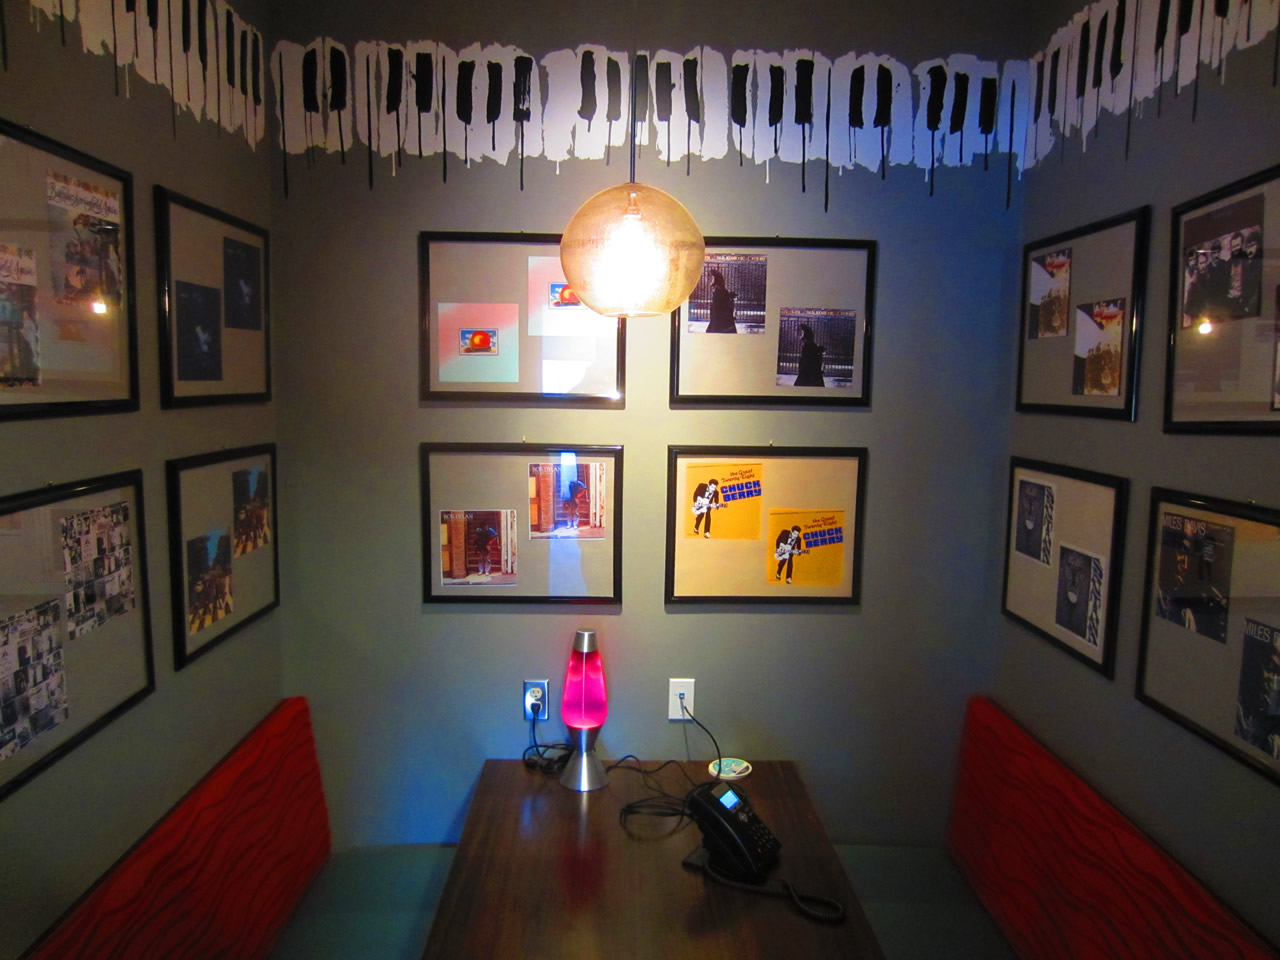 Shopify's music room, as seen from the door